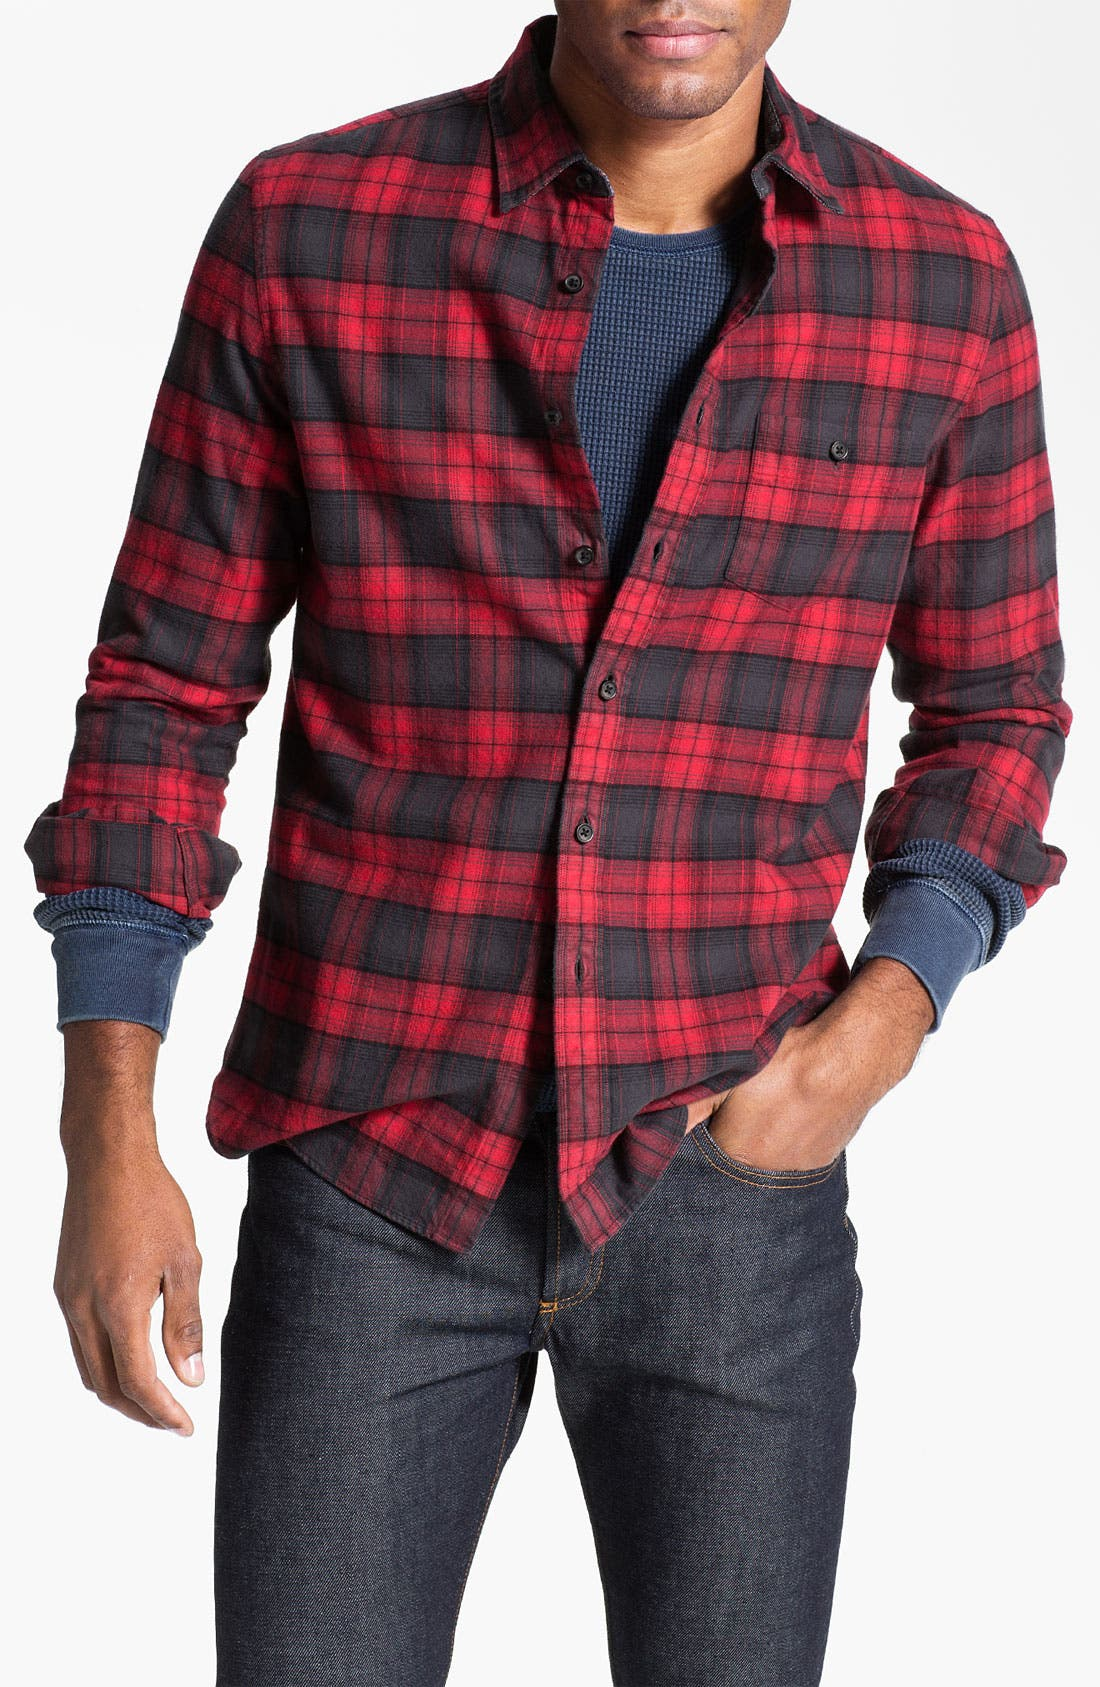 Alternate Image 1 Selected - Wallin & Bros. Plaid Flannel Shirt